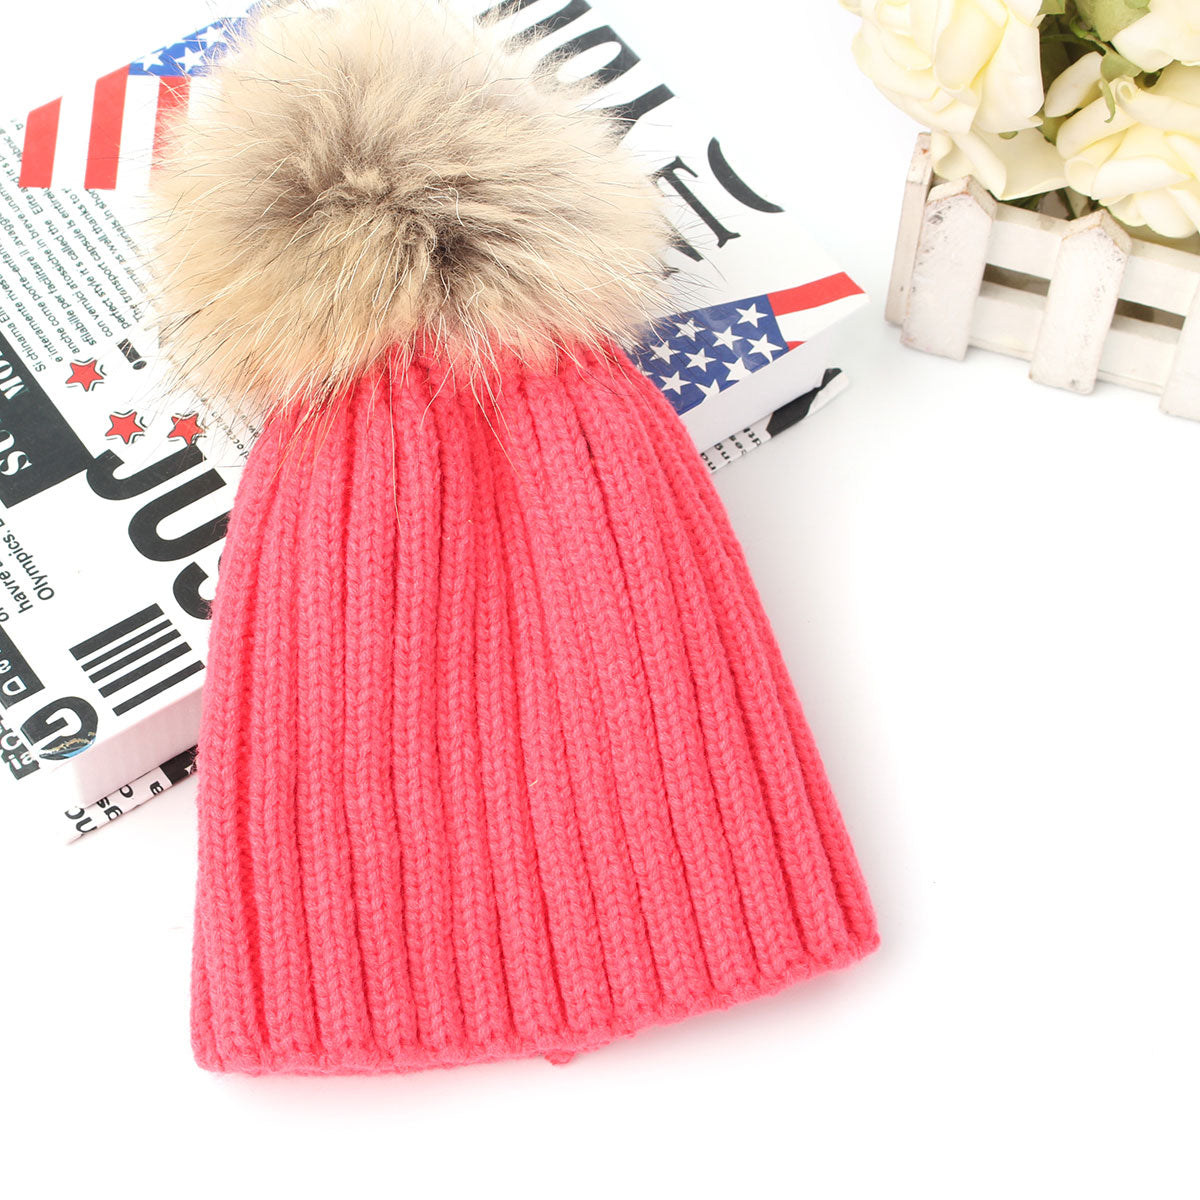 Kids Beanie Warm Knitted Hat with Raccoon Fur Pom Pom